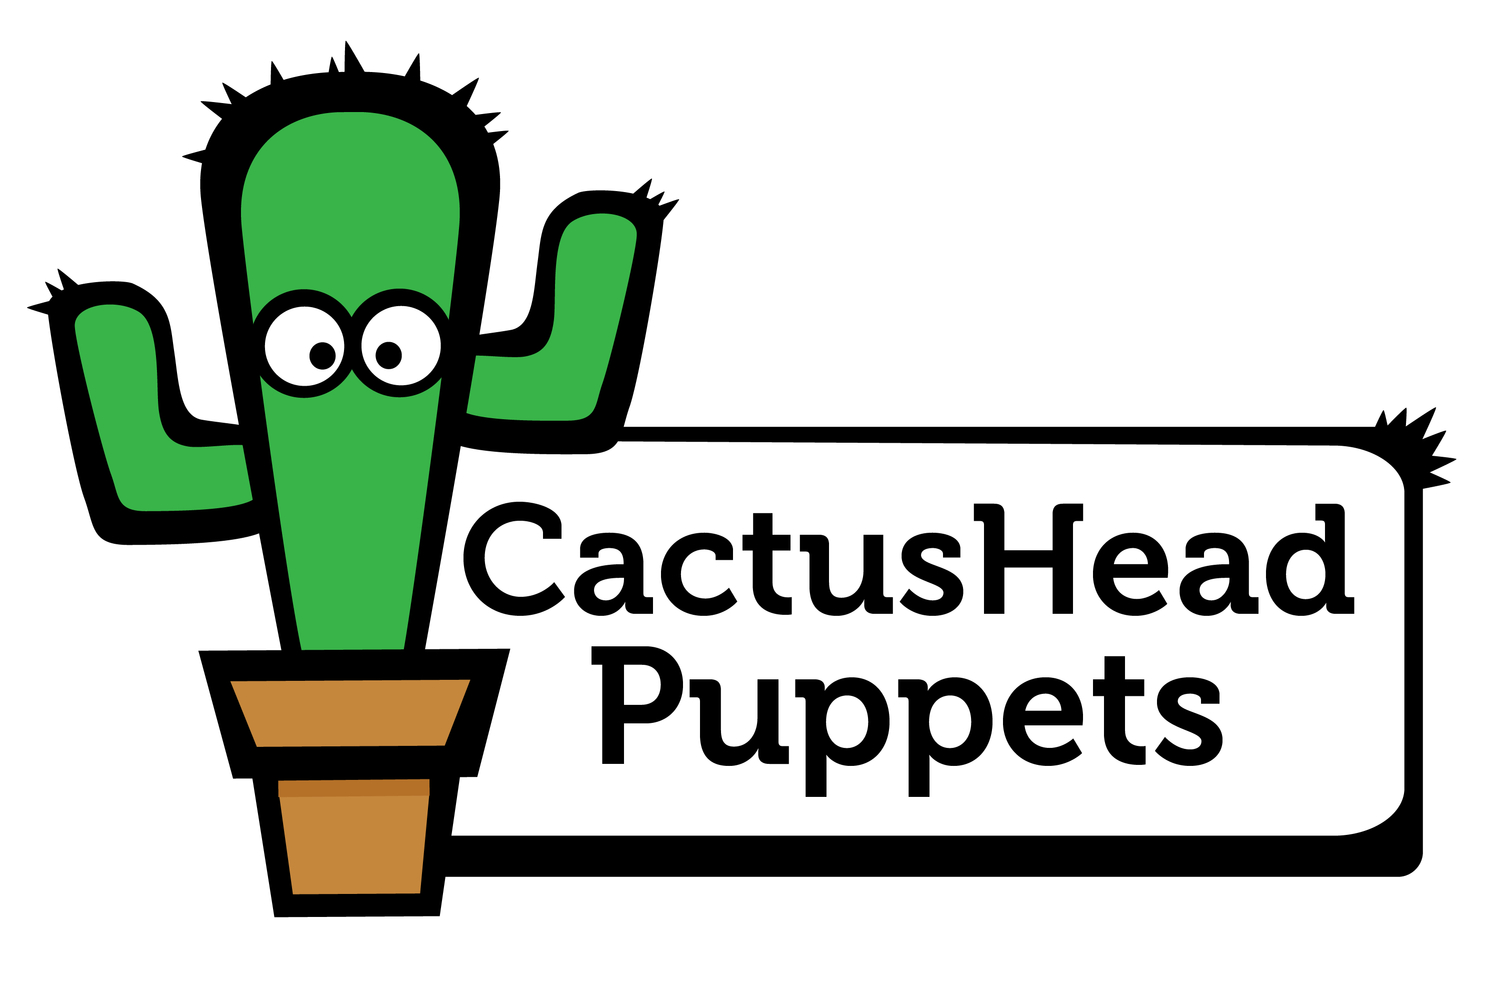 CactusHead Puppets